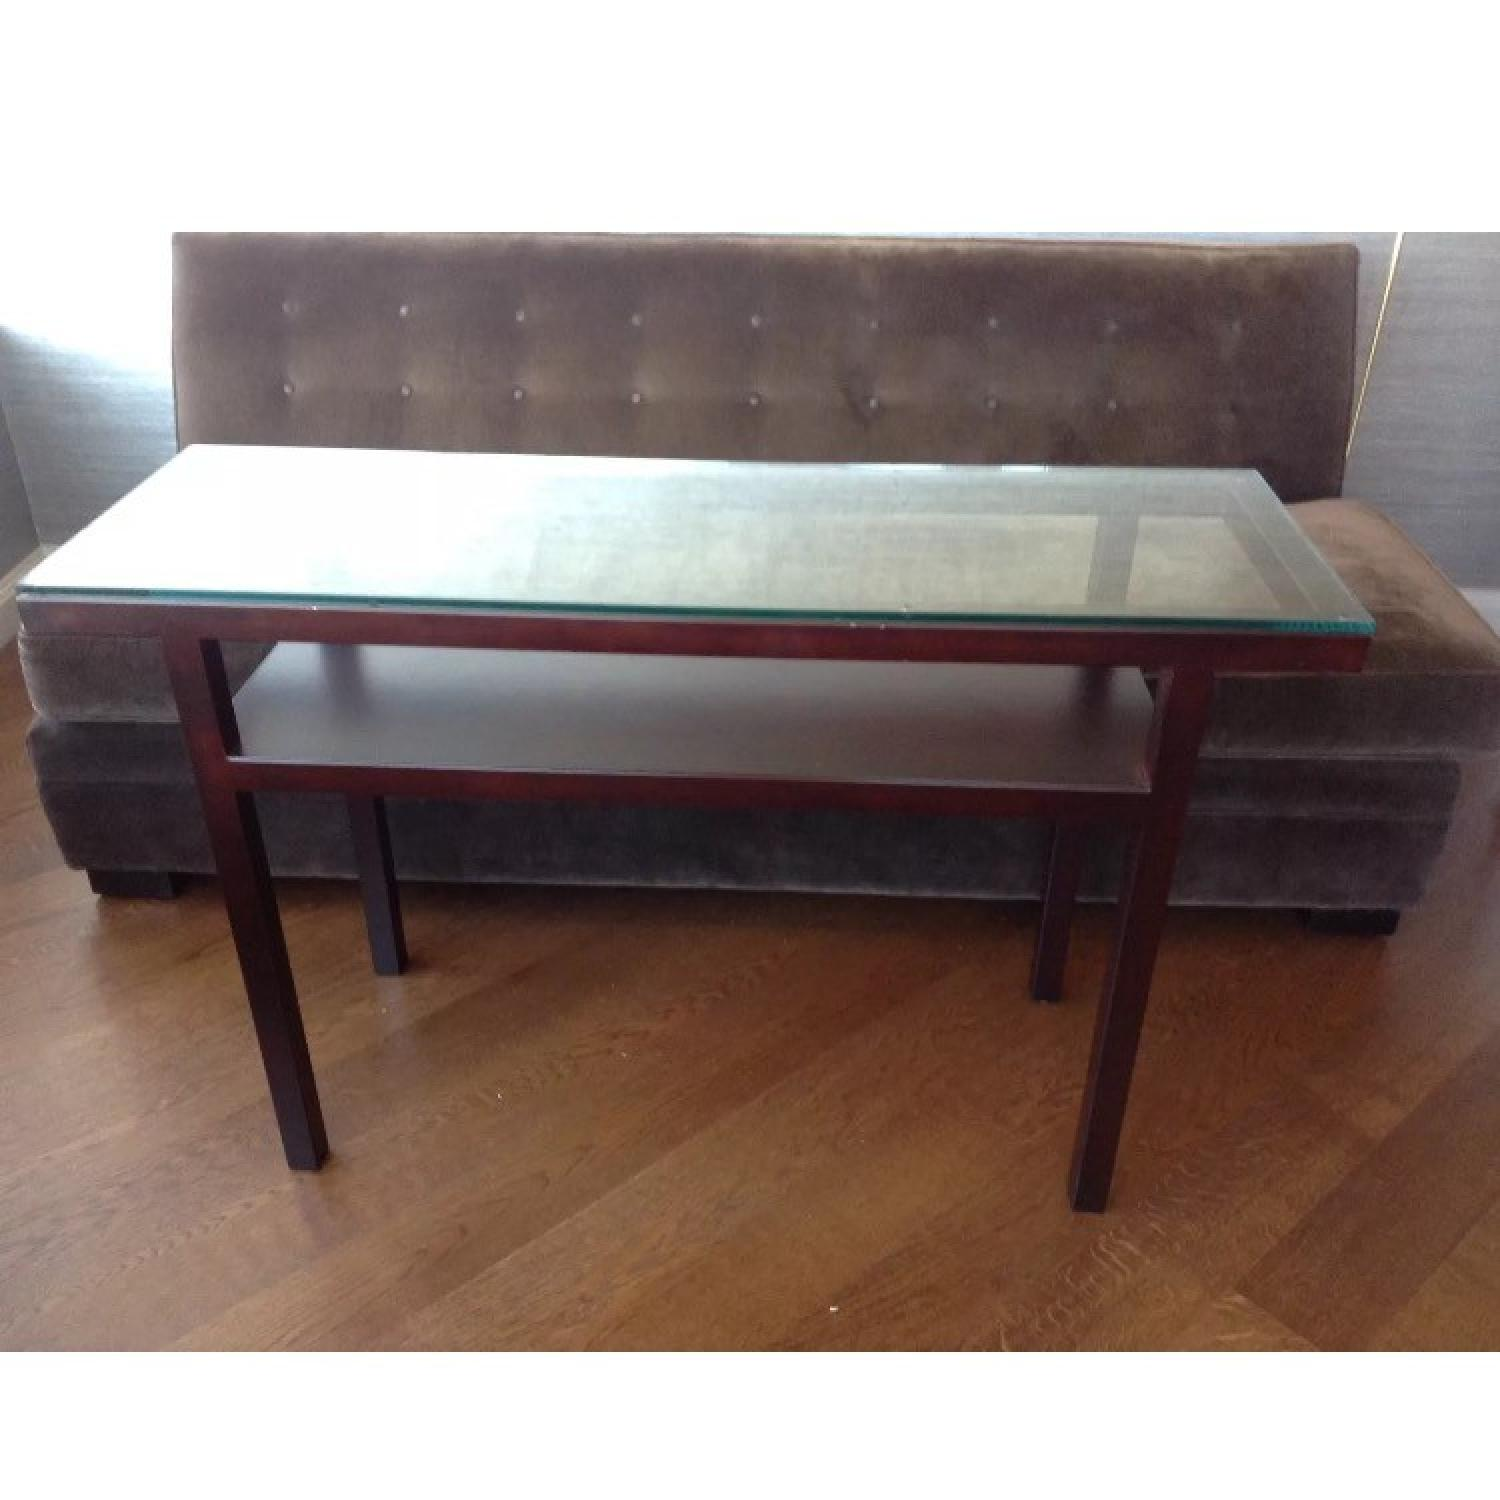 Crate Barrel Glass Bronze Parsons Console Table 0